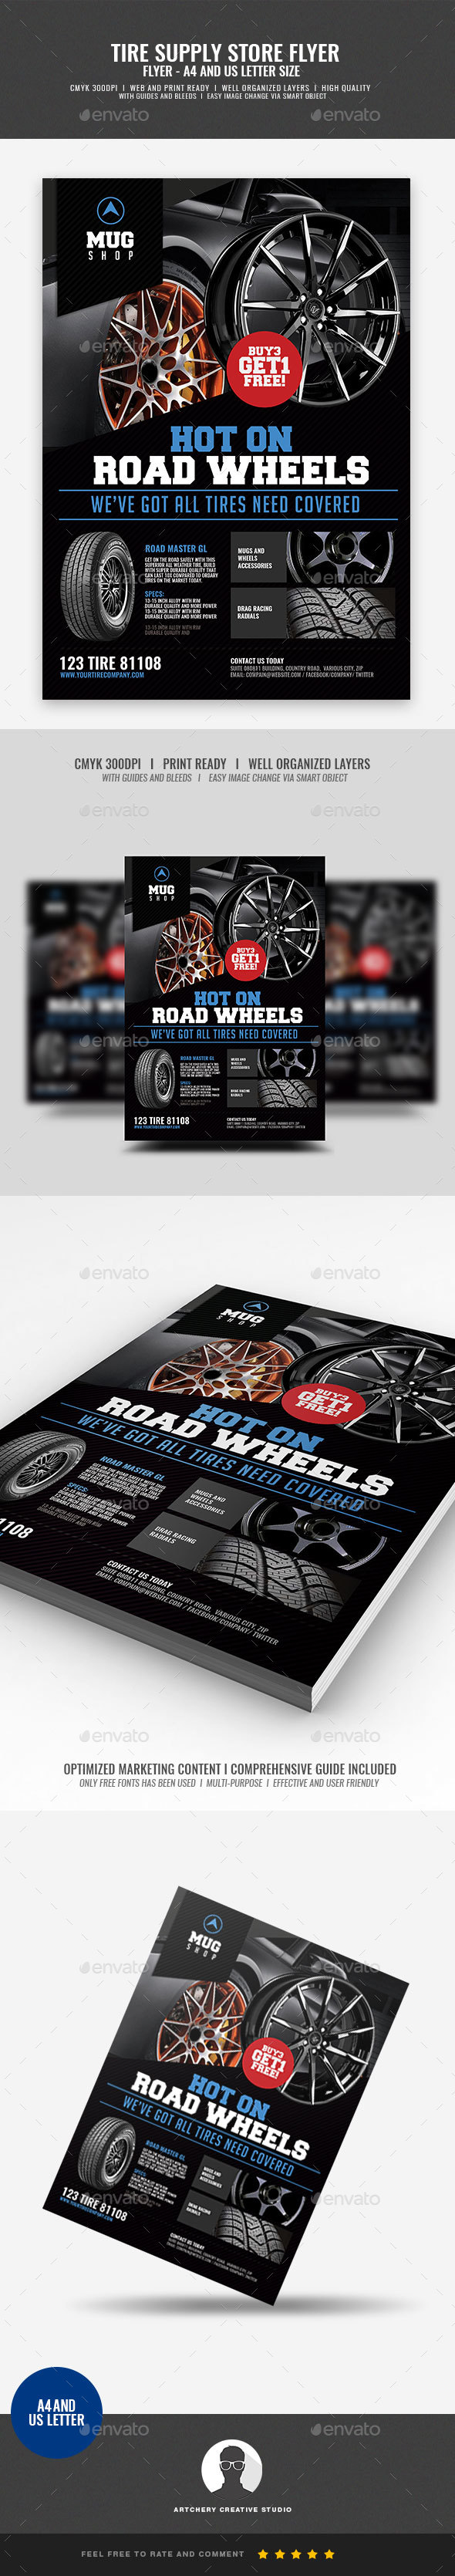 GraphicRiver Tire Supply Shop Flyer 20992732